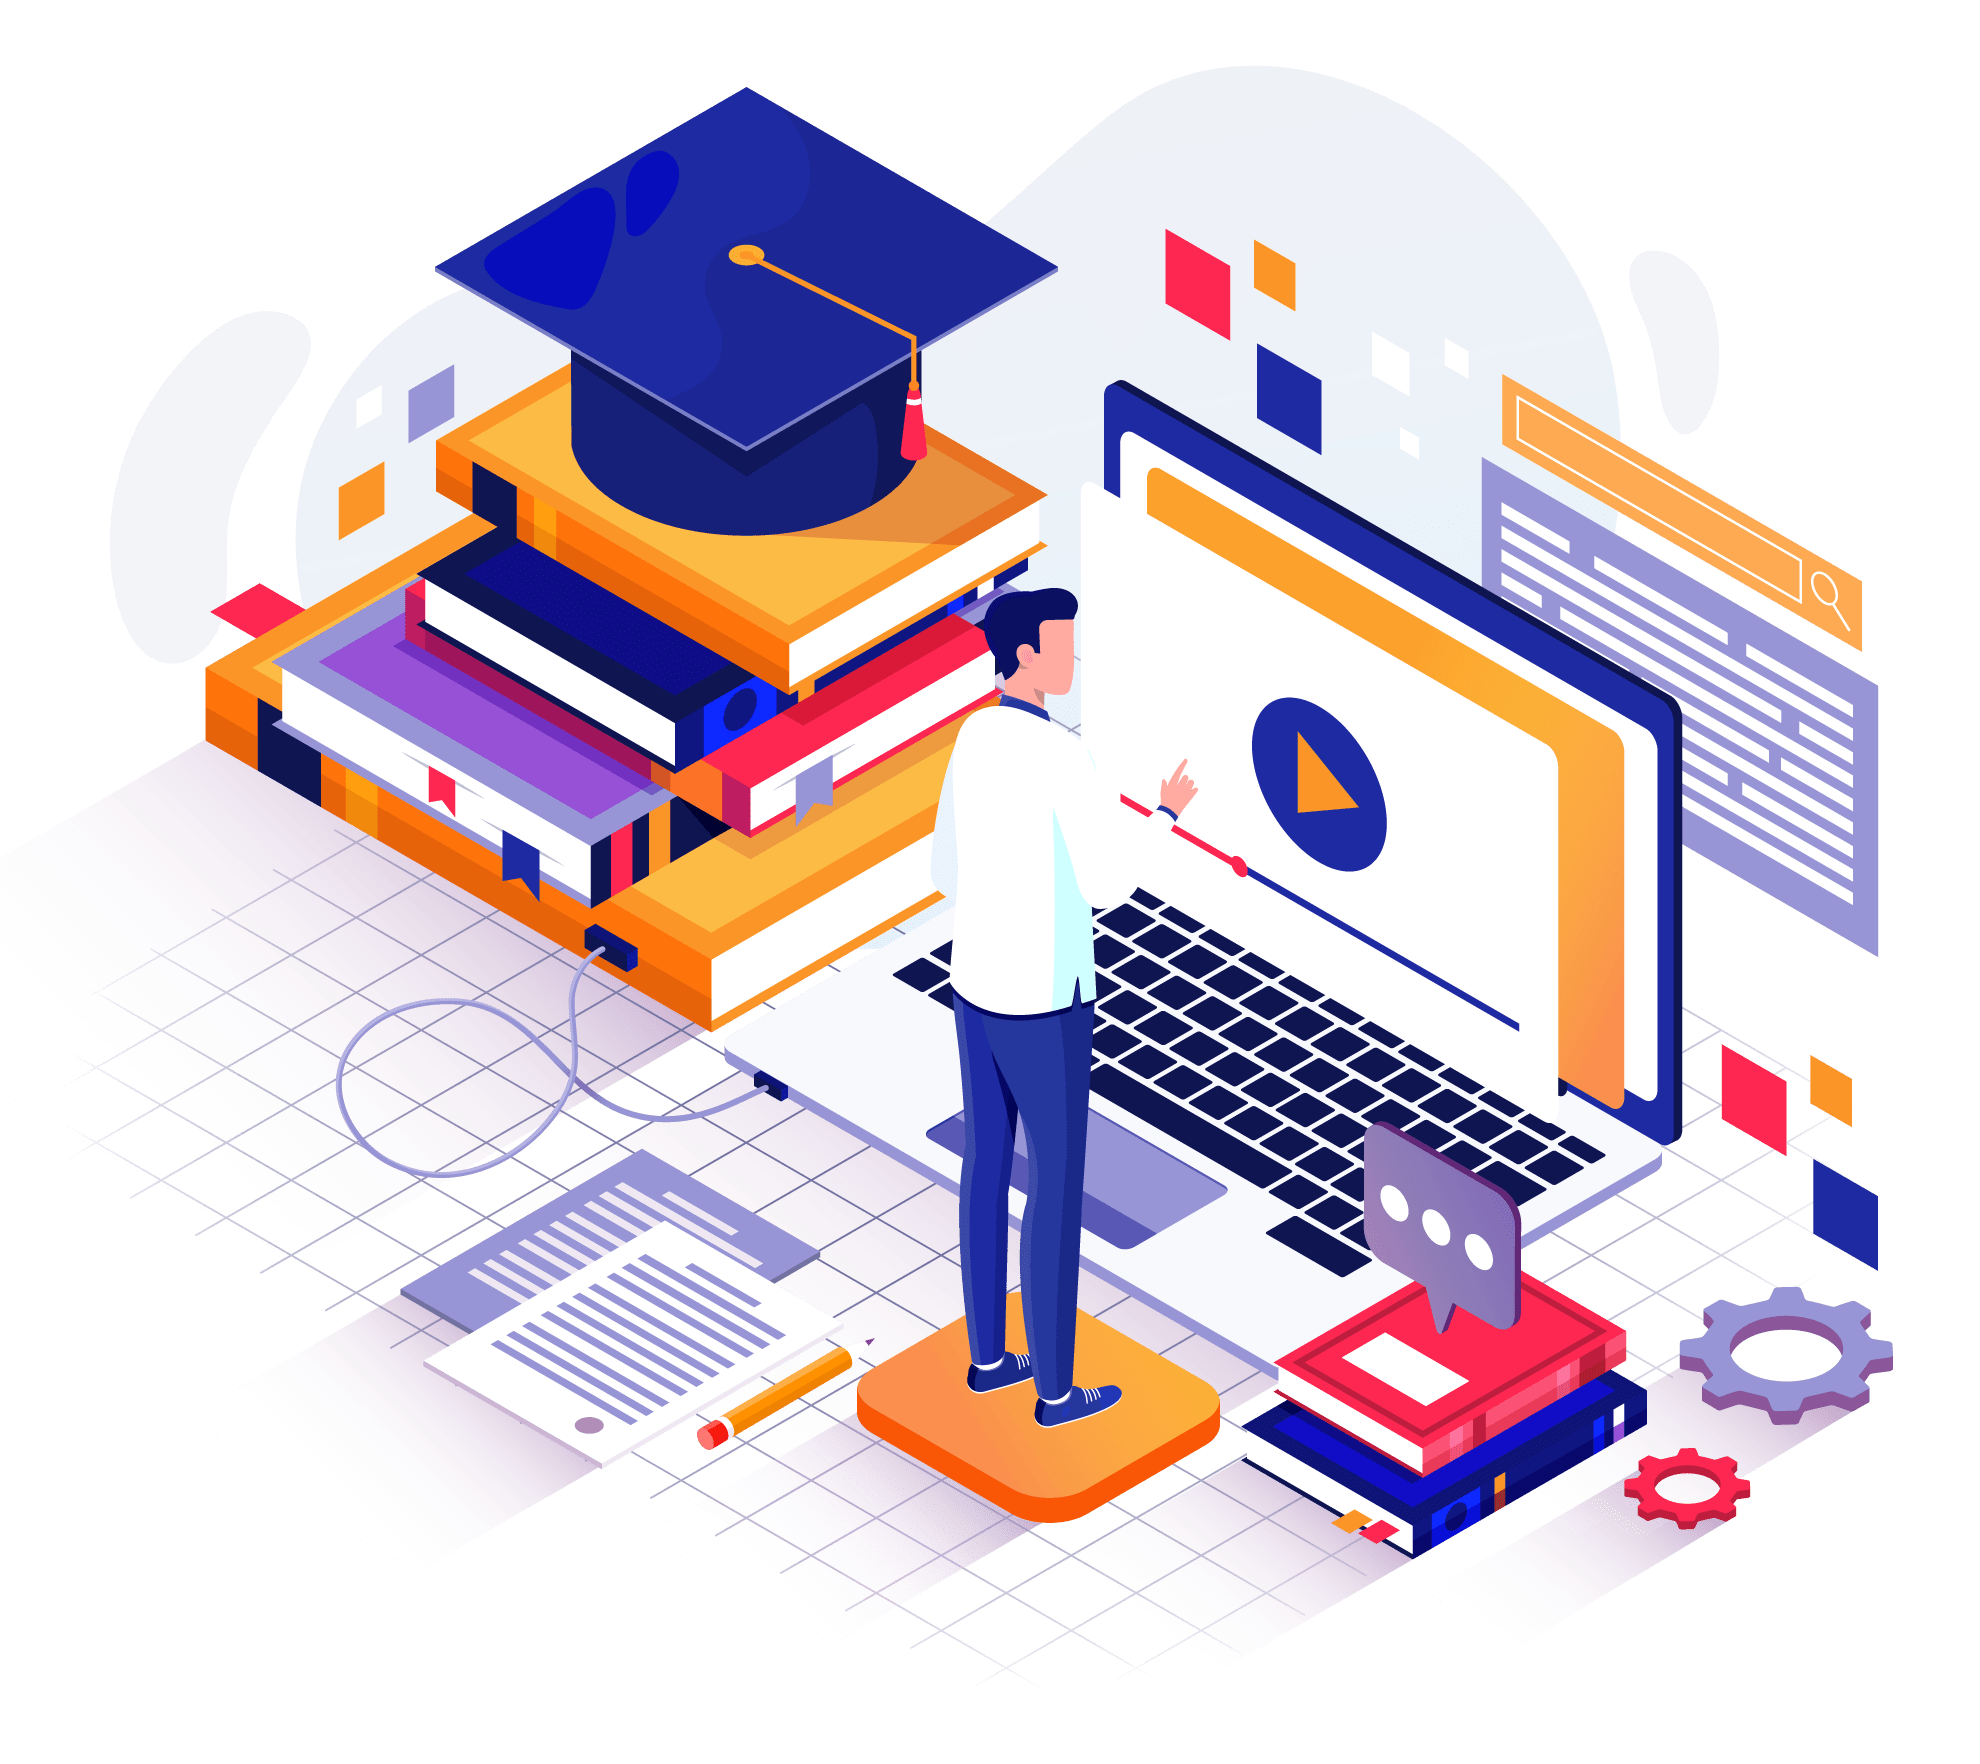 What You Learn at Digital School